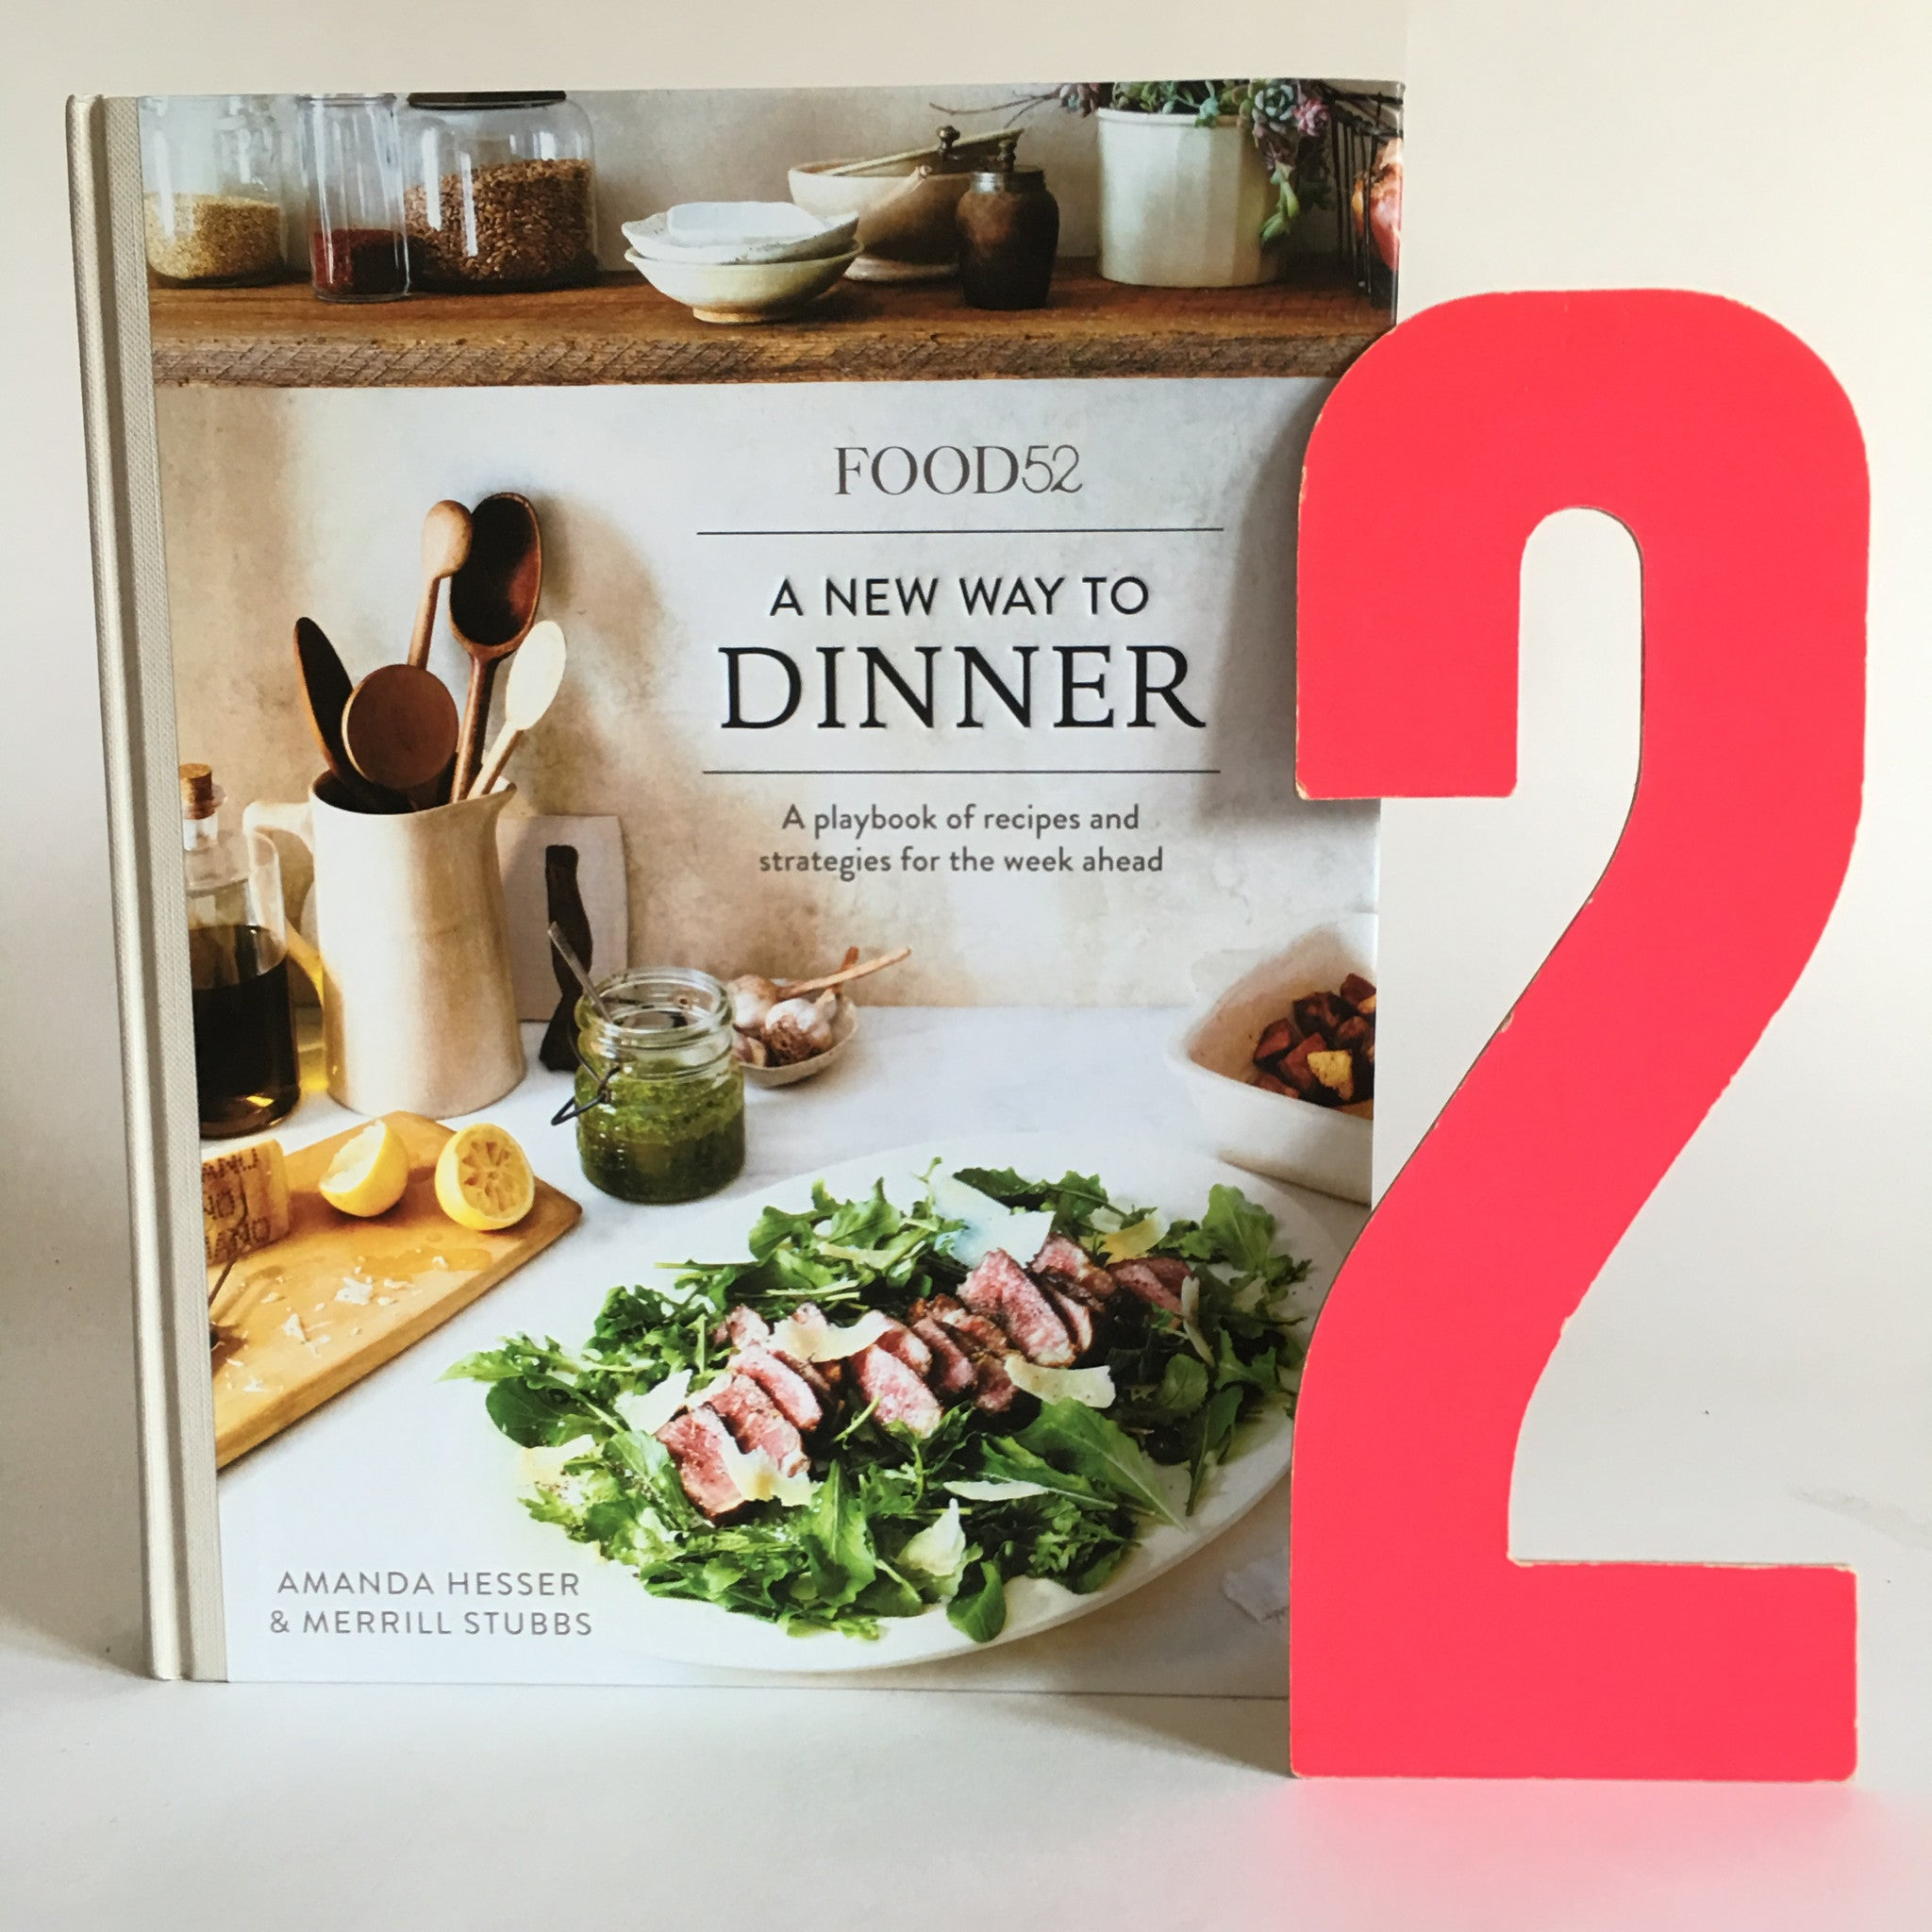 Food 52: A New Way To Dinner